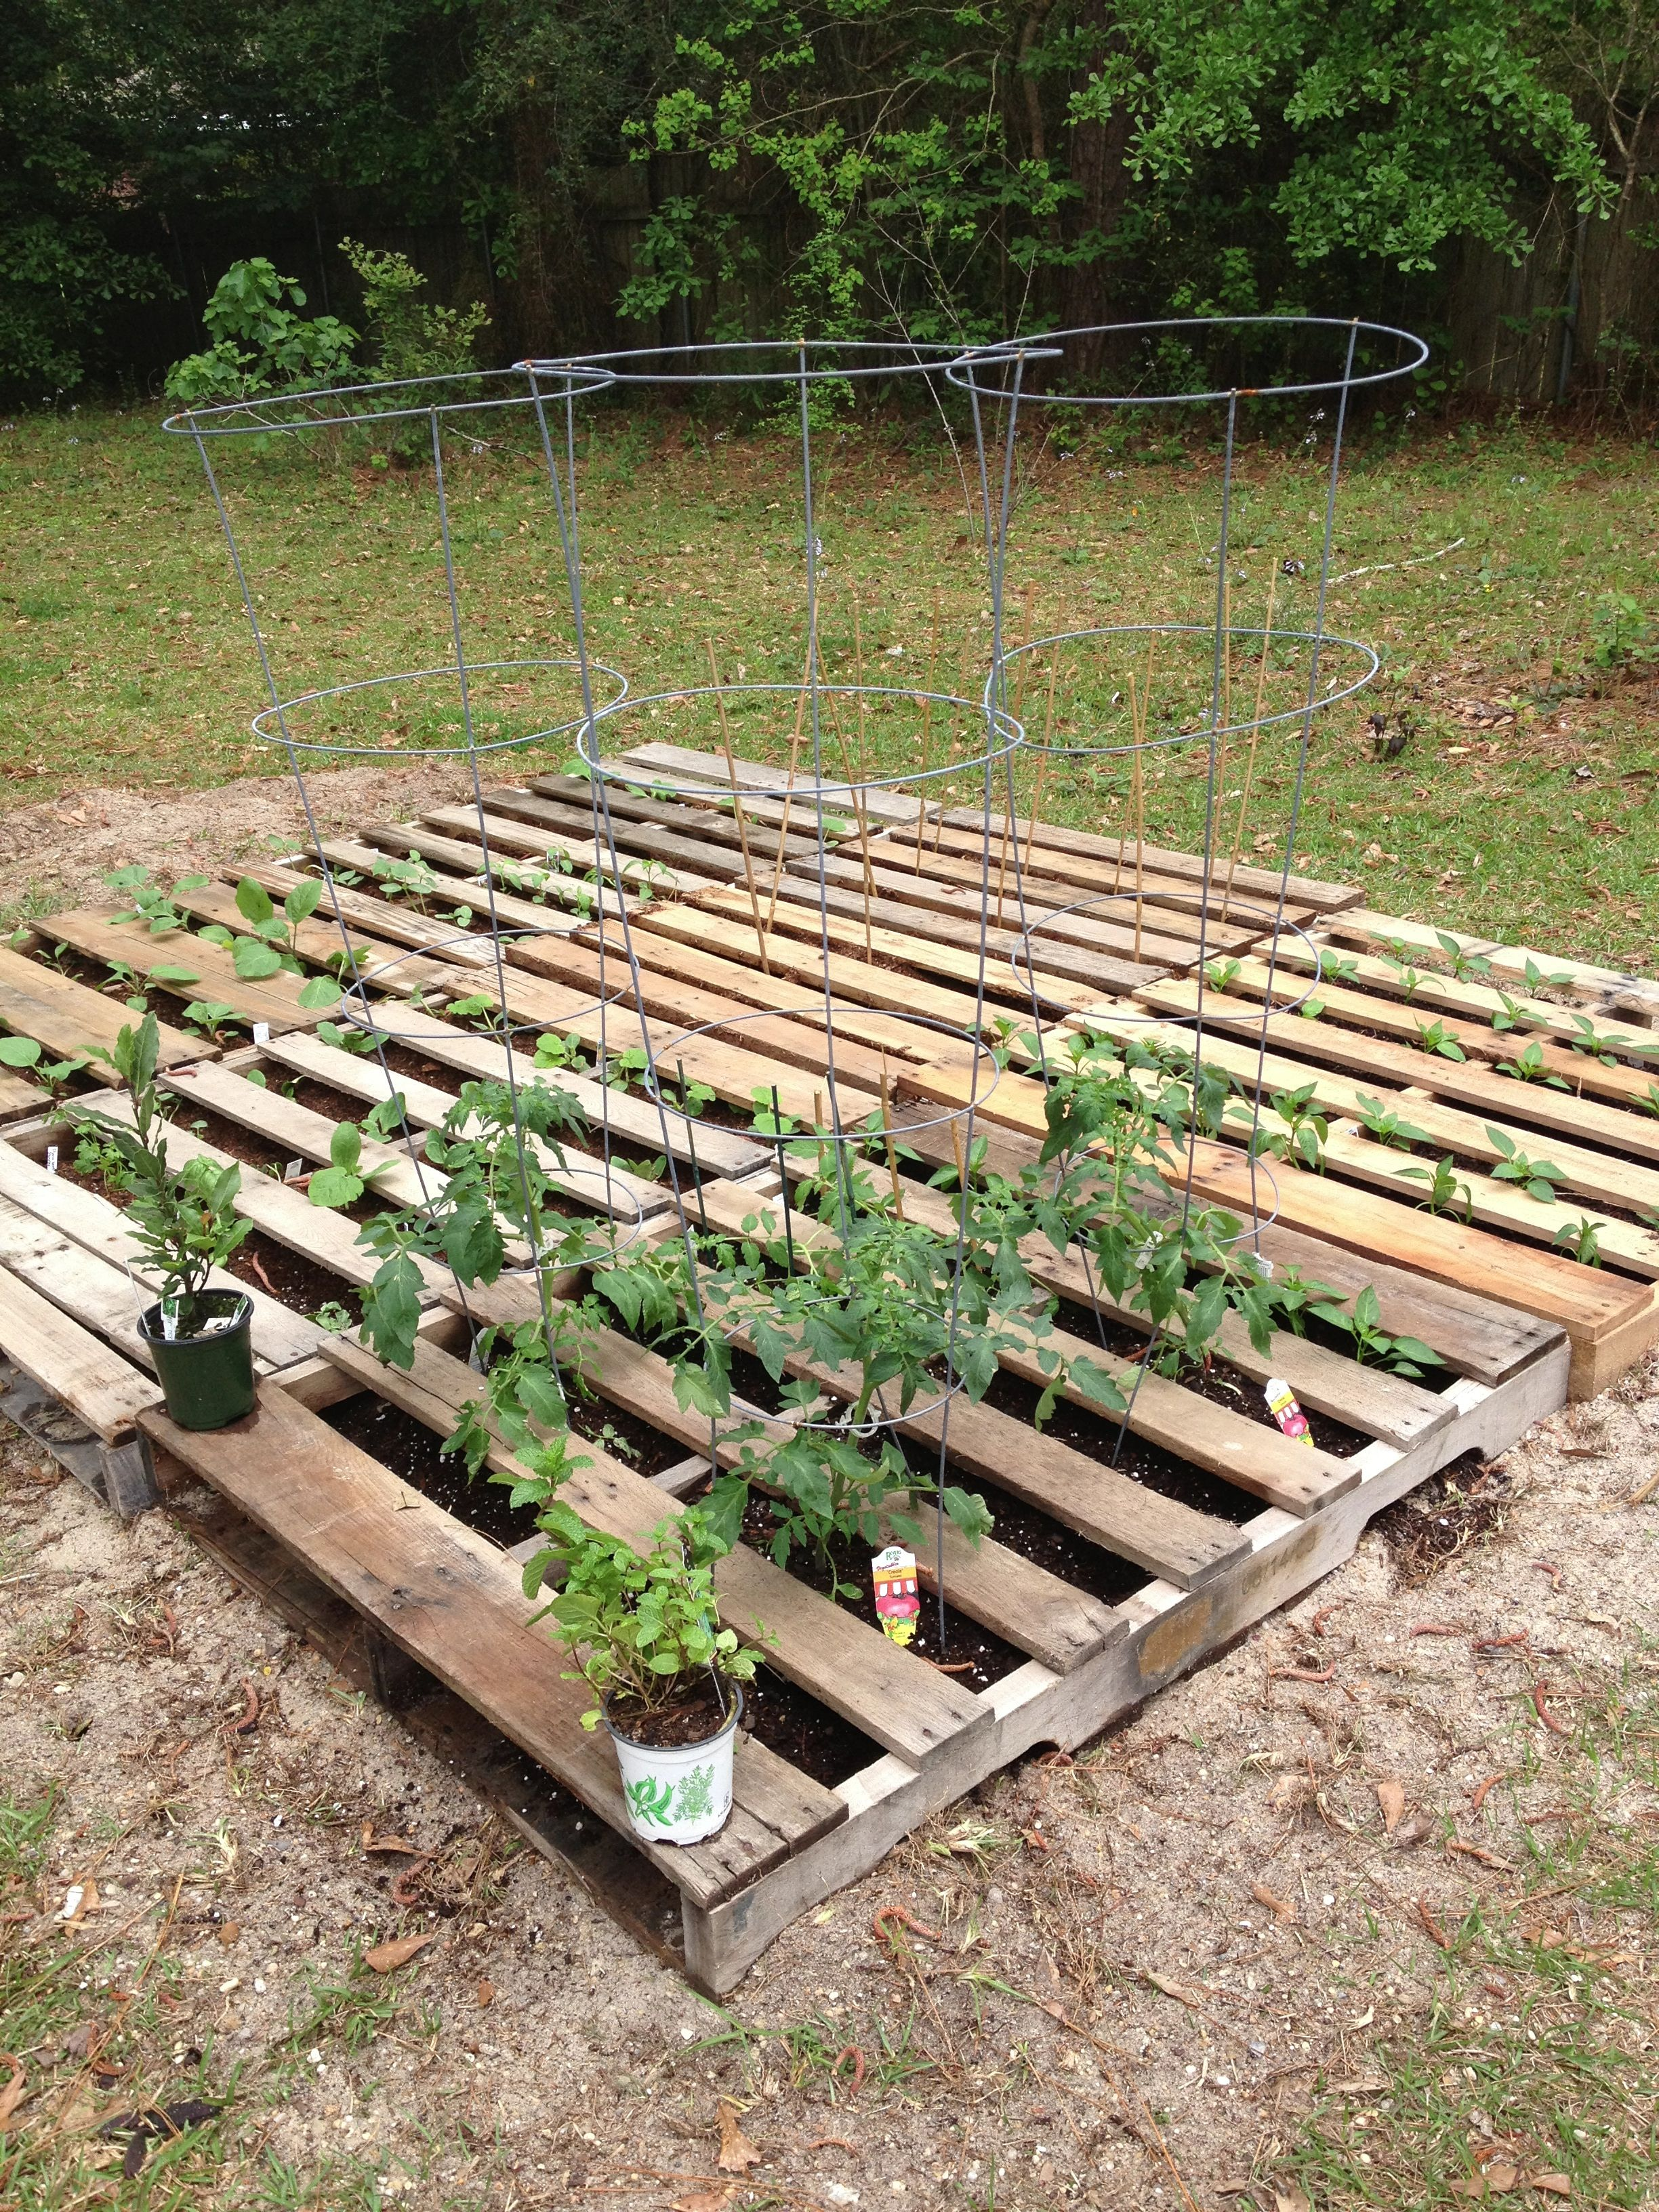 Our Pinterest Inspired Pallet Garden Was So Quick And Easy To Set